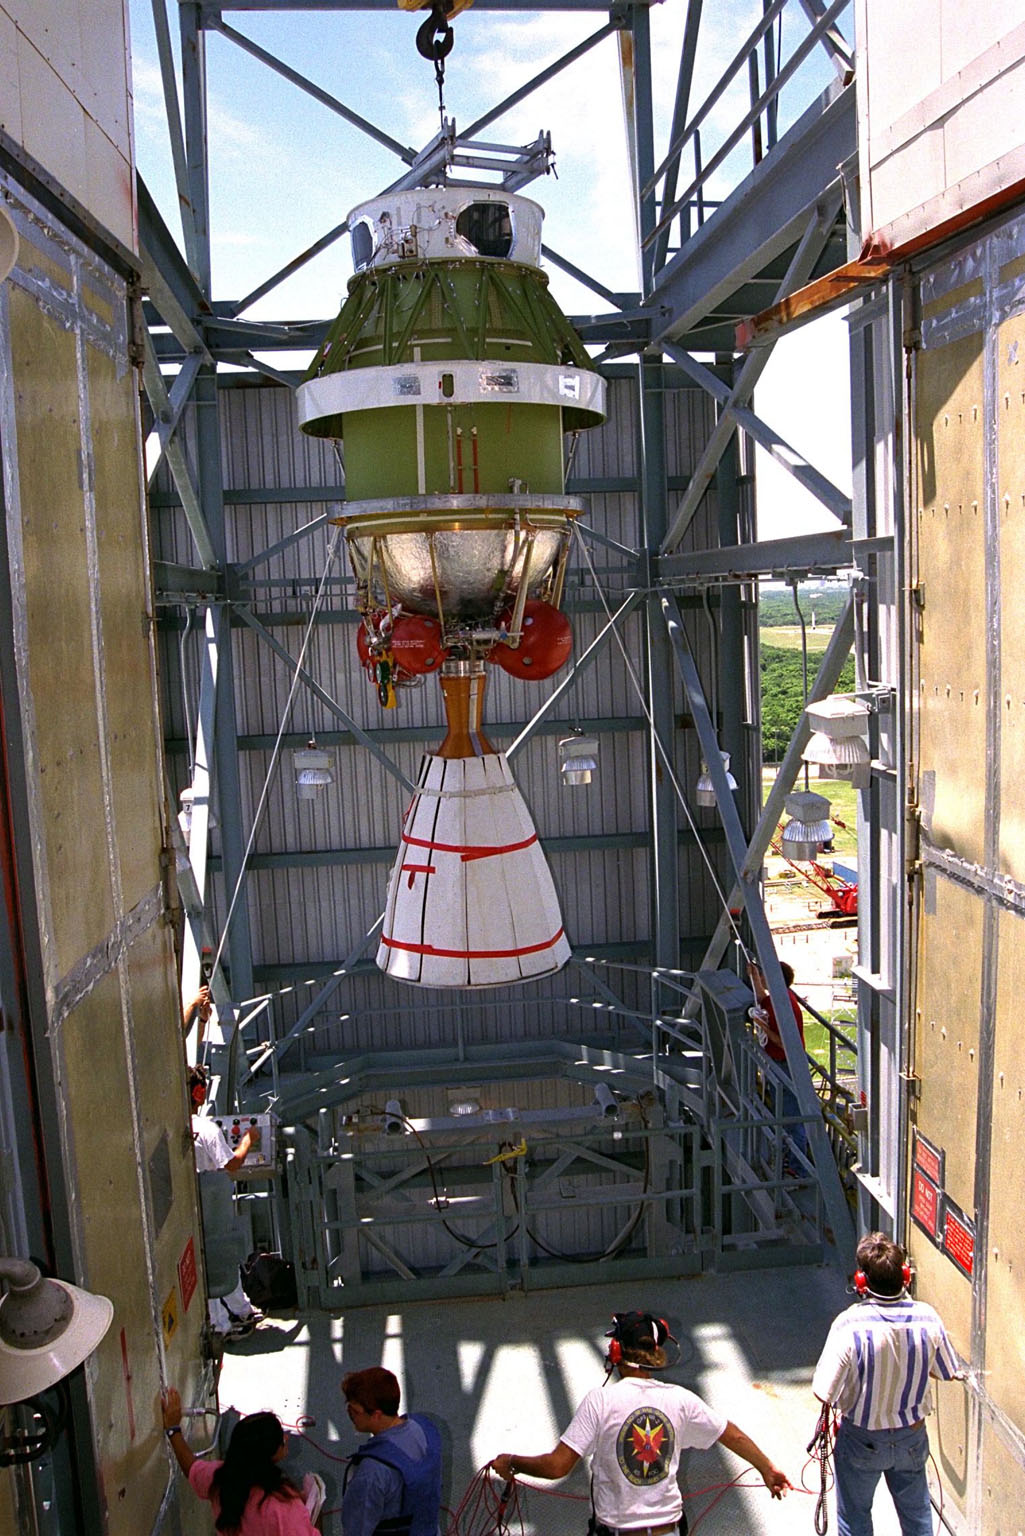 The second stage of the Delta II rocket which will to be used to launch the Advanced Composition Explorer (ACE) spacecraft is erected at Launch Complex 17A at Cape Canaveral Air Station. Scheduled for launch on Aug. 25, ACE will study low-energy particles of solar origin and high-energy galactic particles. The ACE observatory will be placed into an orbit almost a million miles (1.5 million kilometers) away from the Earth, about 1/100 the distance from the Earth to the Sun